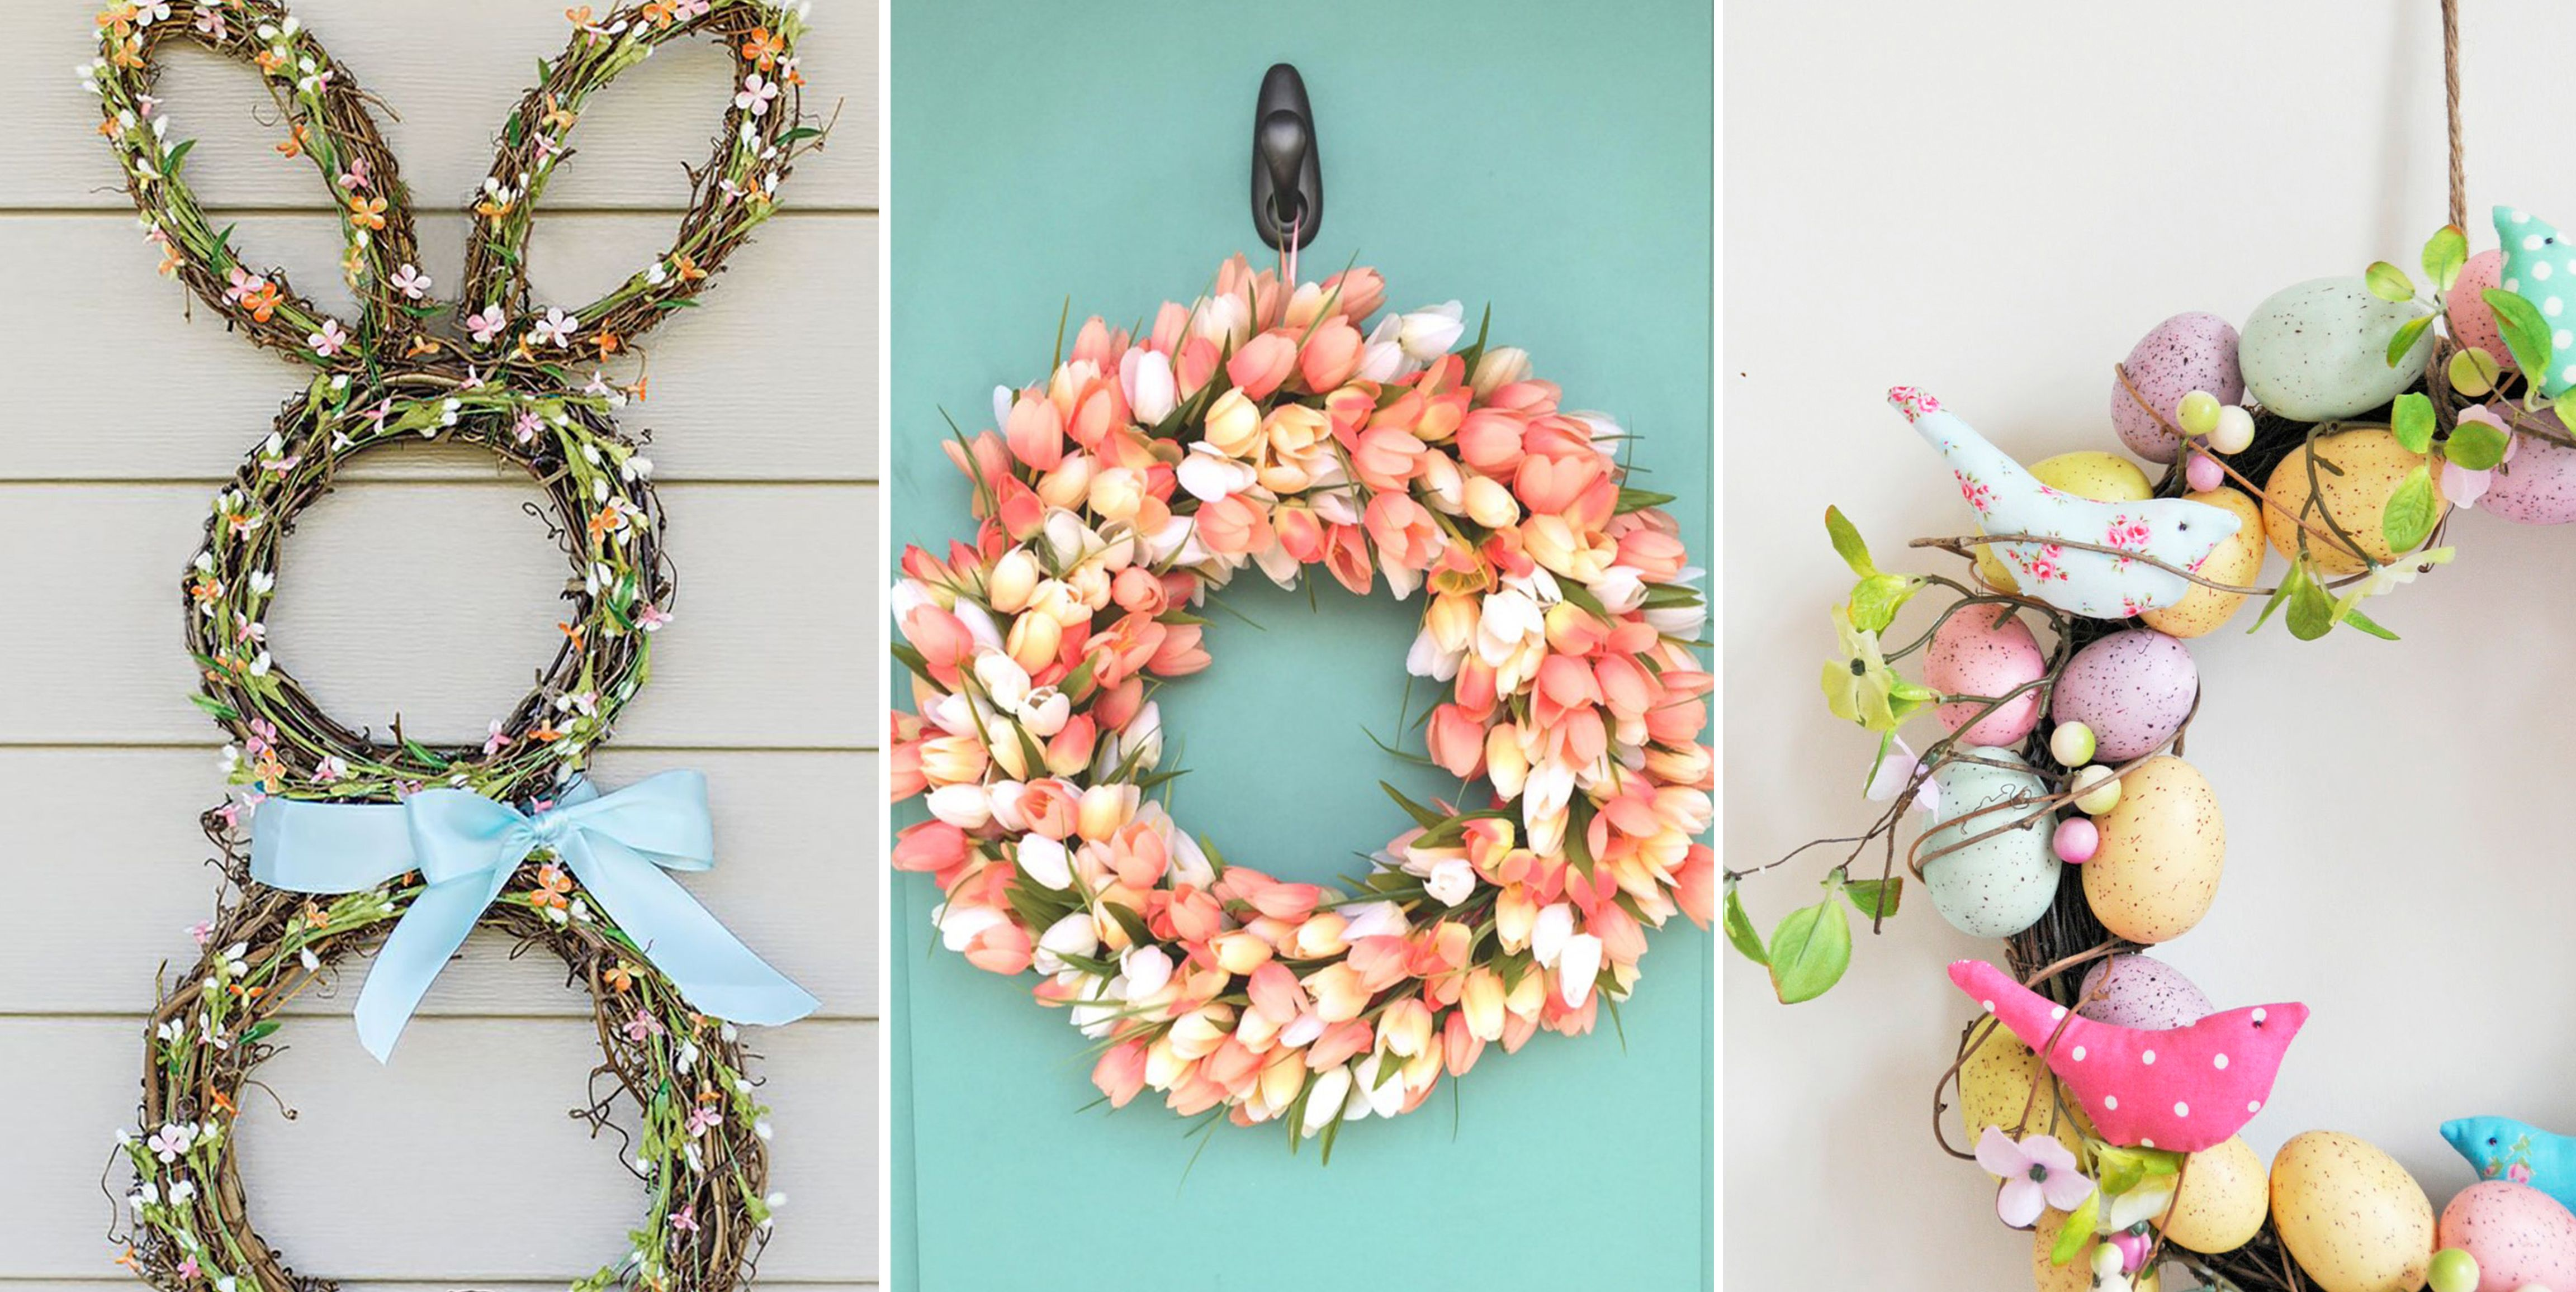 17 DIY Easter Wreath Ideas - How to Make a Cute Easter